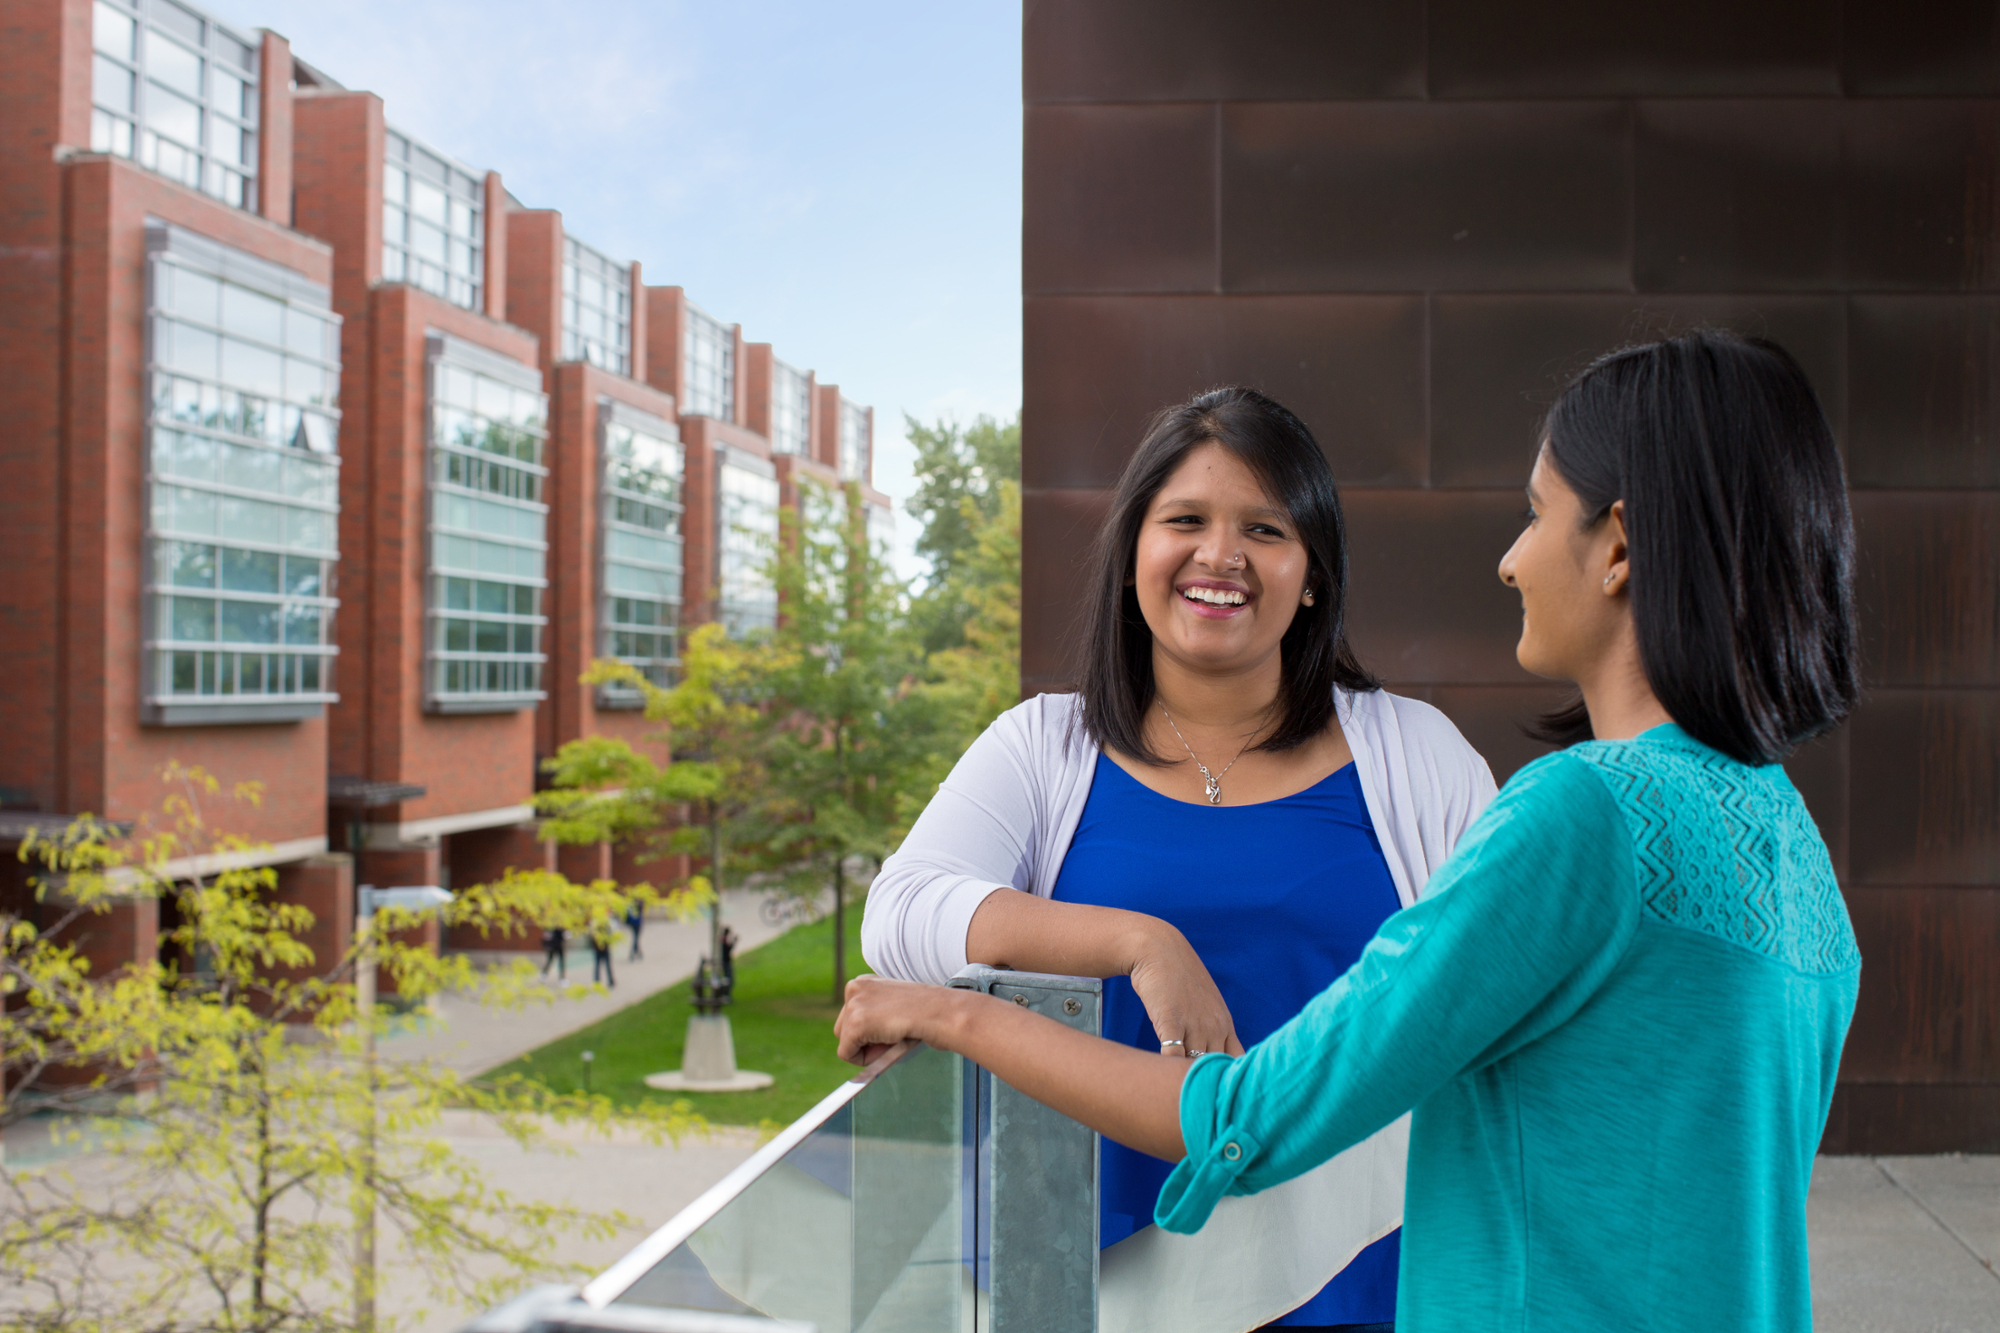 Two students speak with each other outside.